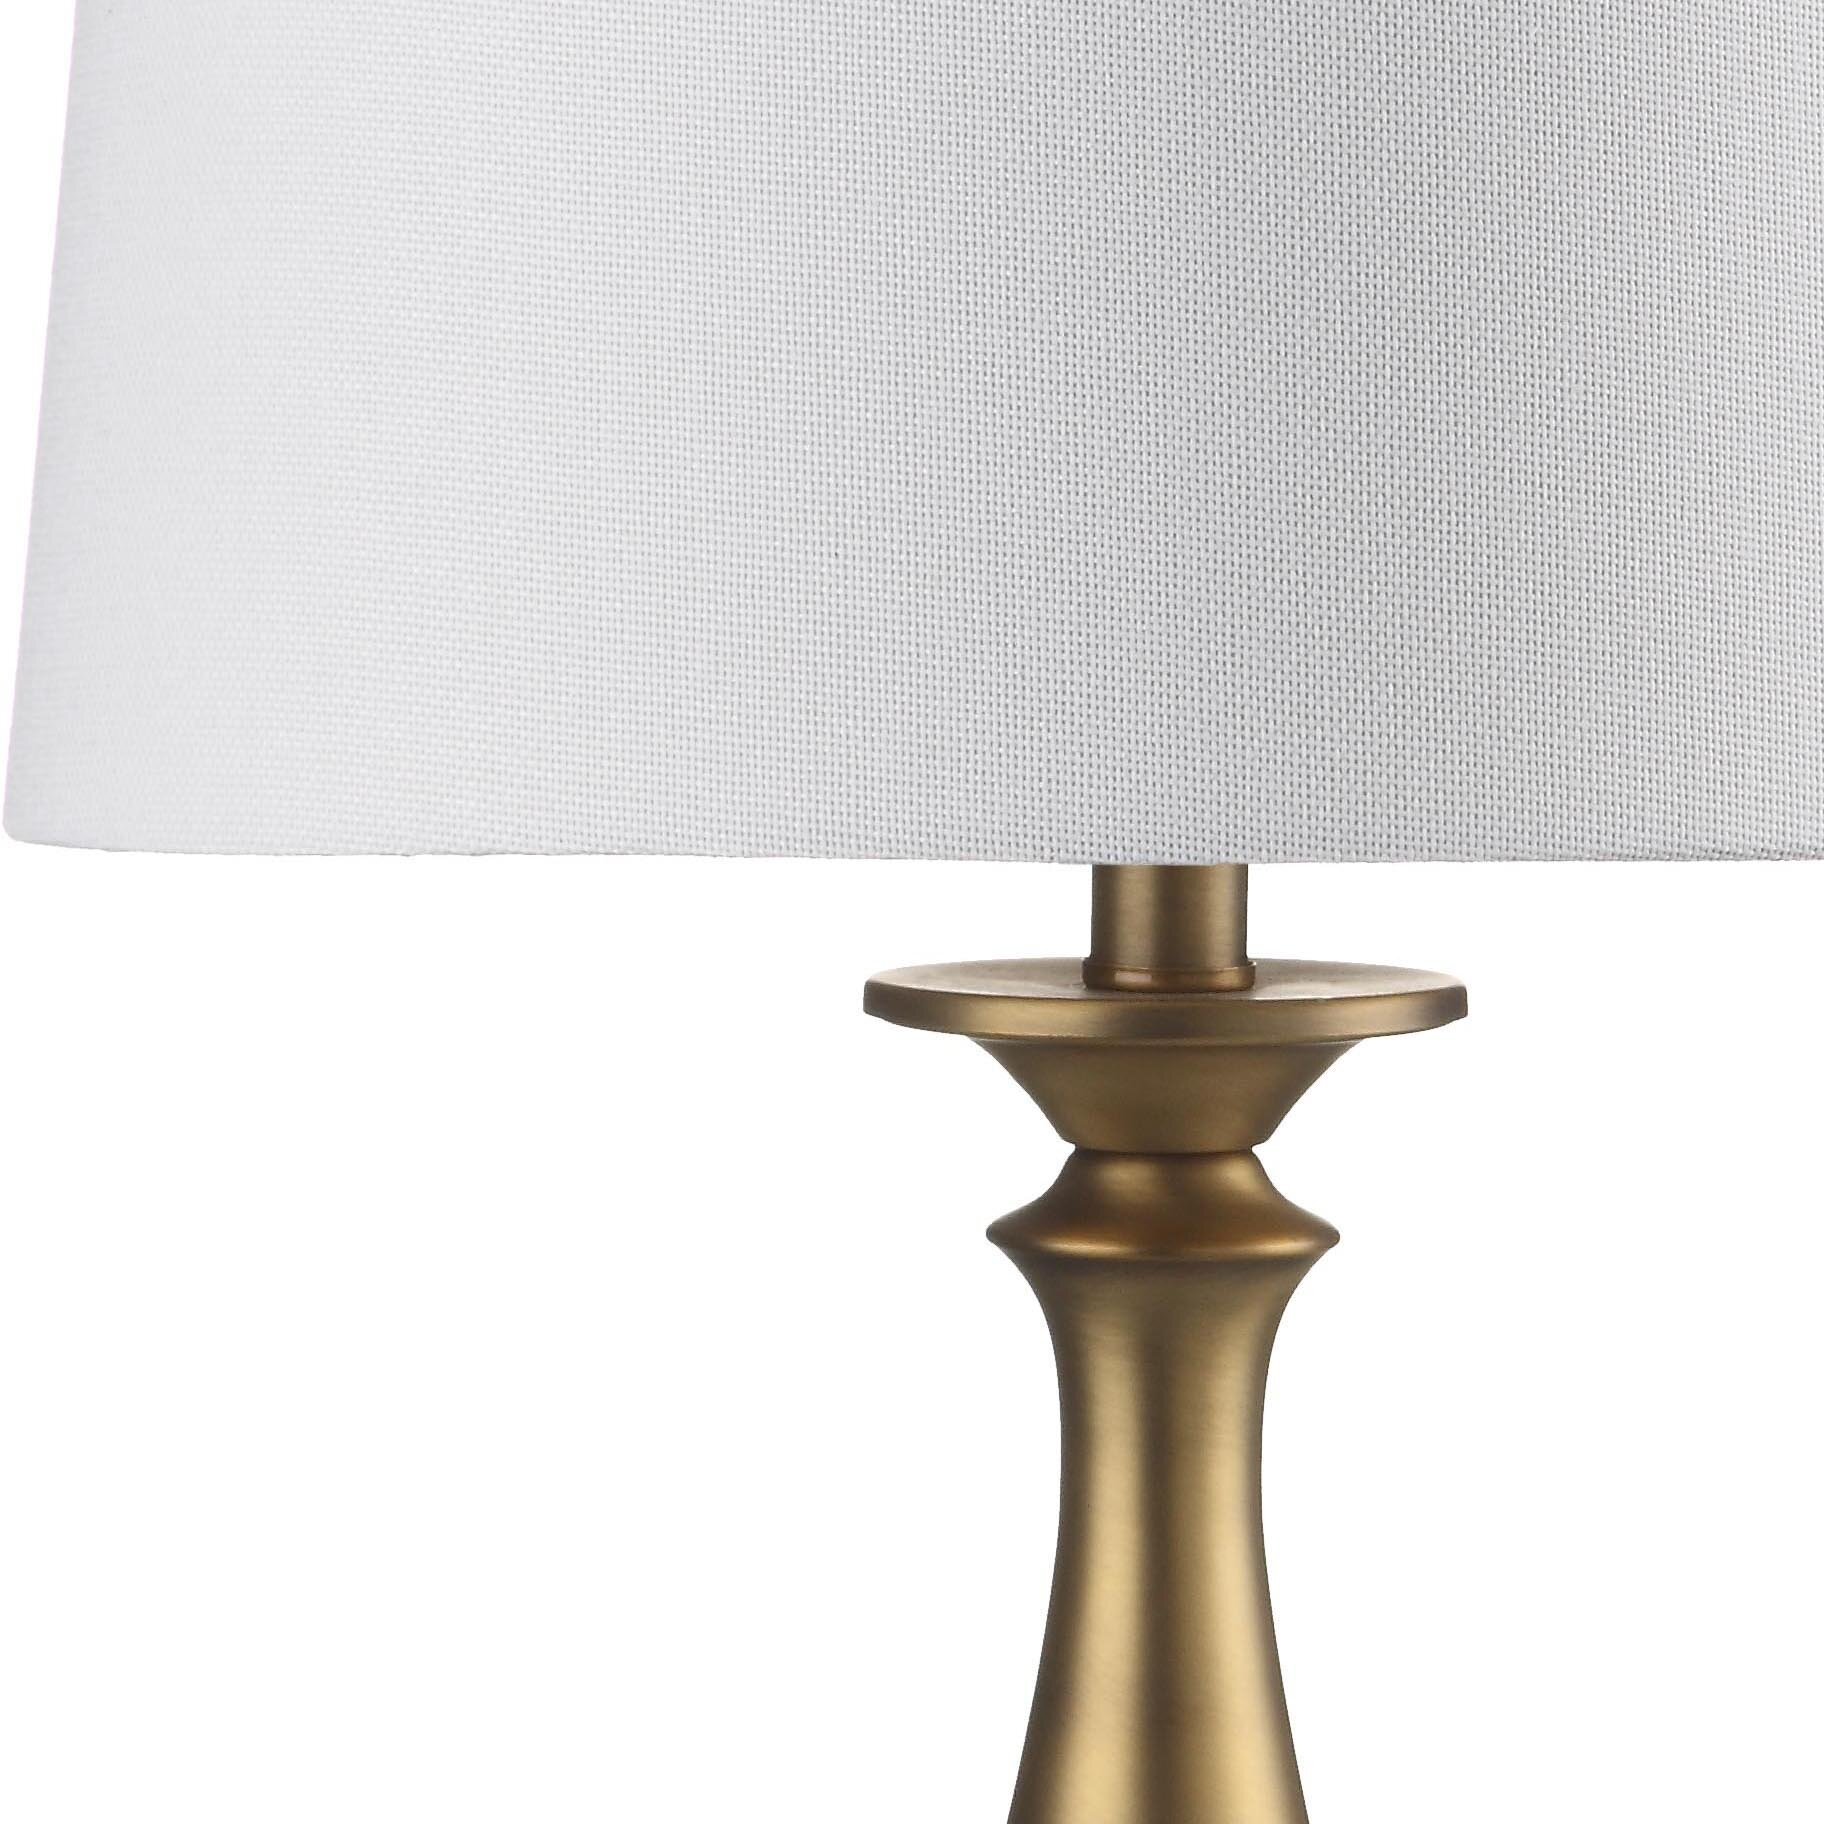 Safavieh brighton candlestick 29 table lamps set of 2 for Wayfair industrial lamp